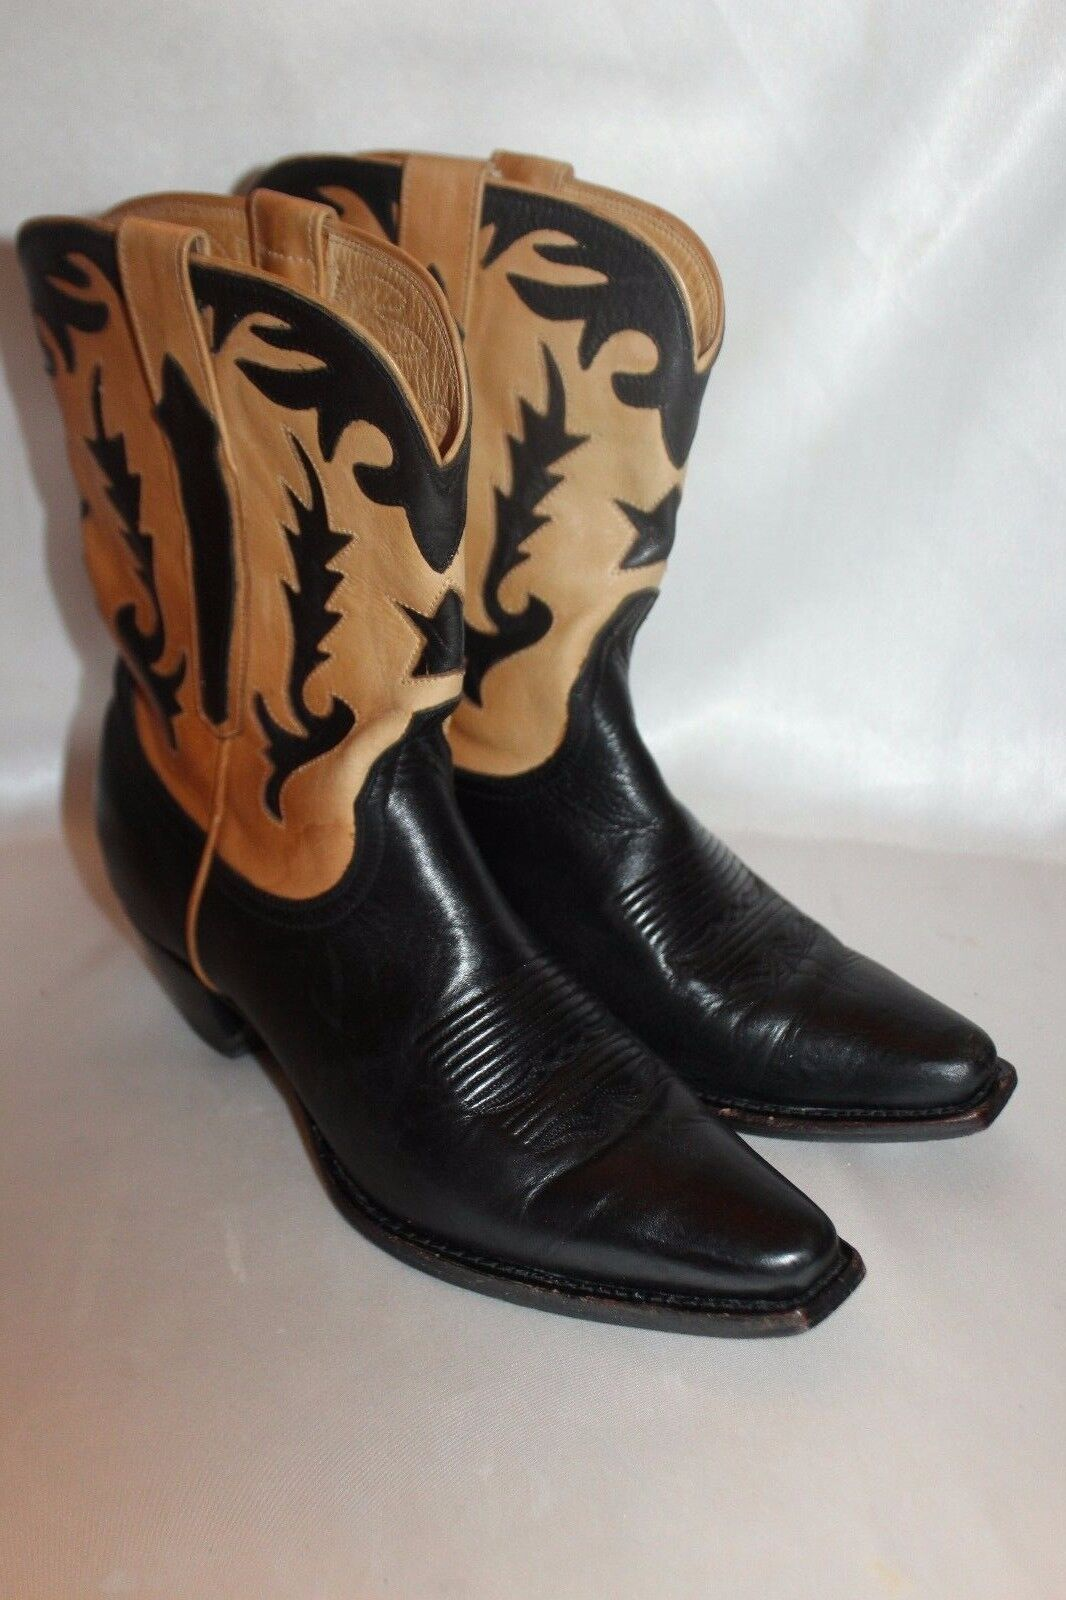 LUCCHESE CHARLIE 1 HORSE Black Tan Calf Leather Leather Leather Western Cowboy Boots Sz 7 Exc 1ca2e5